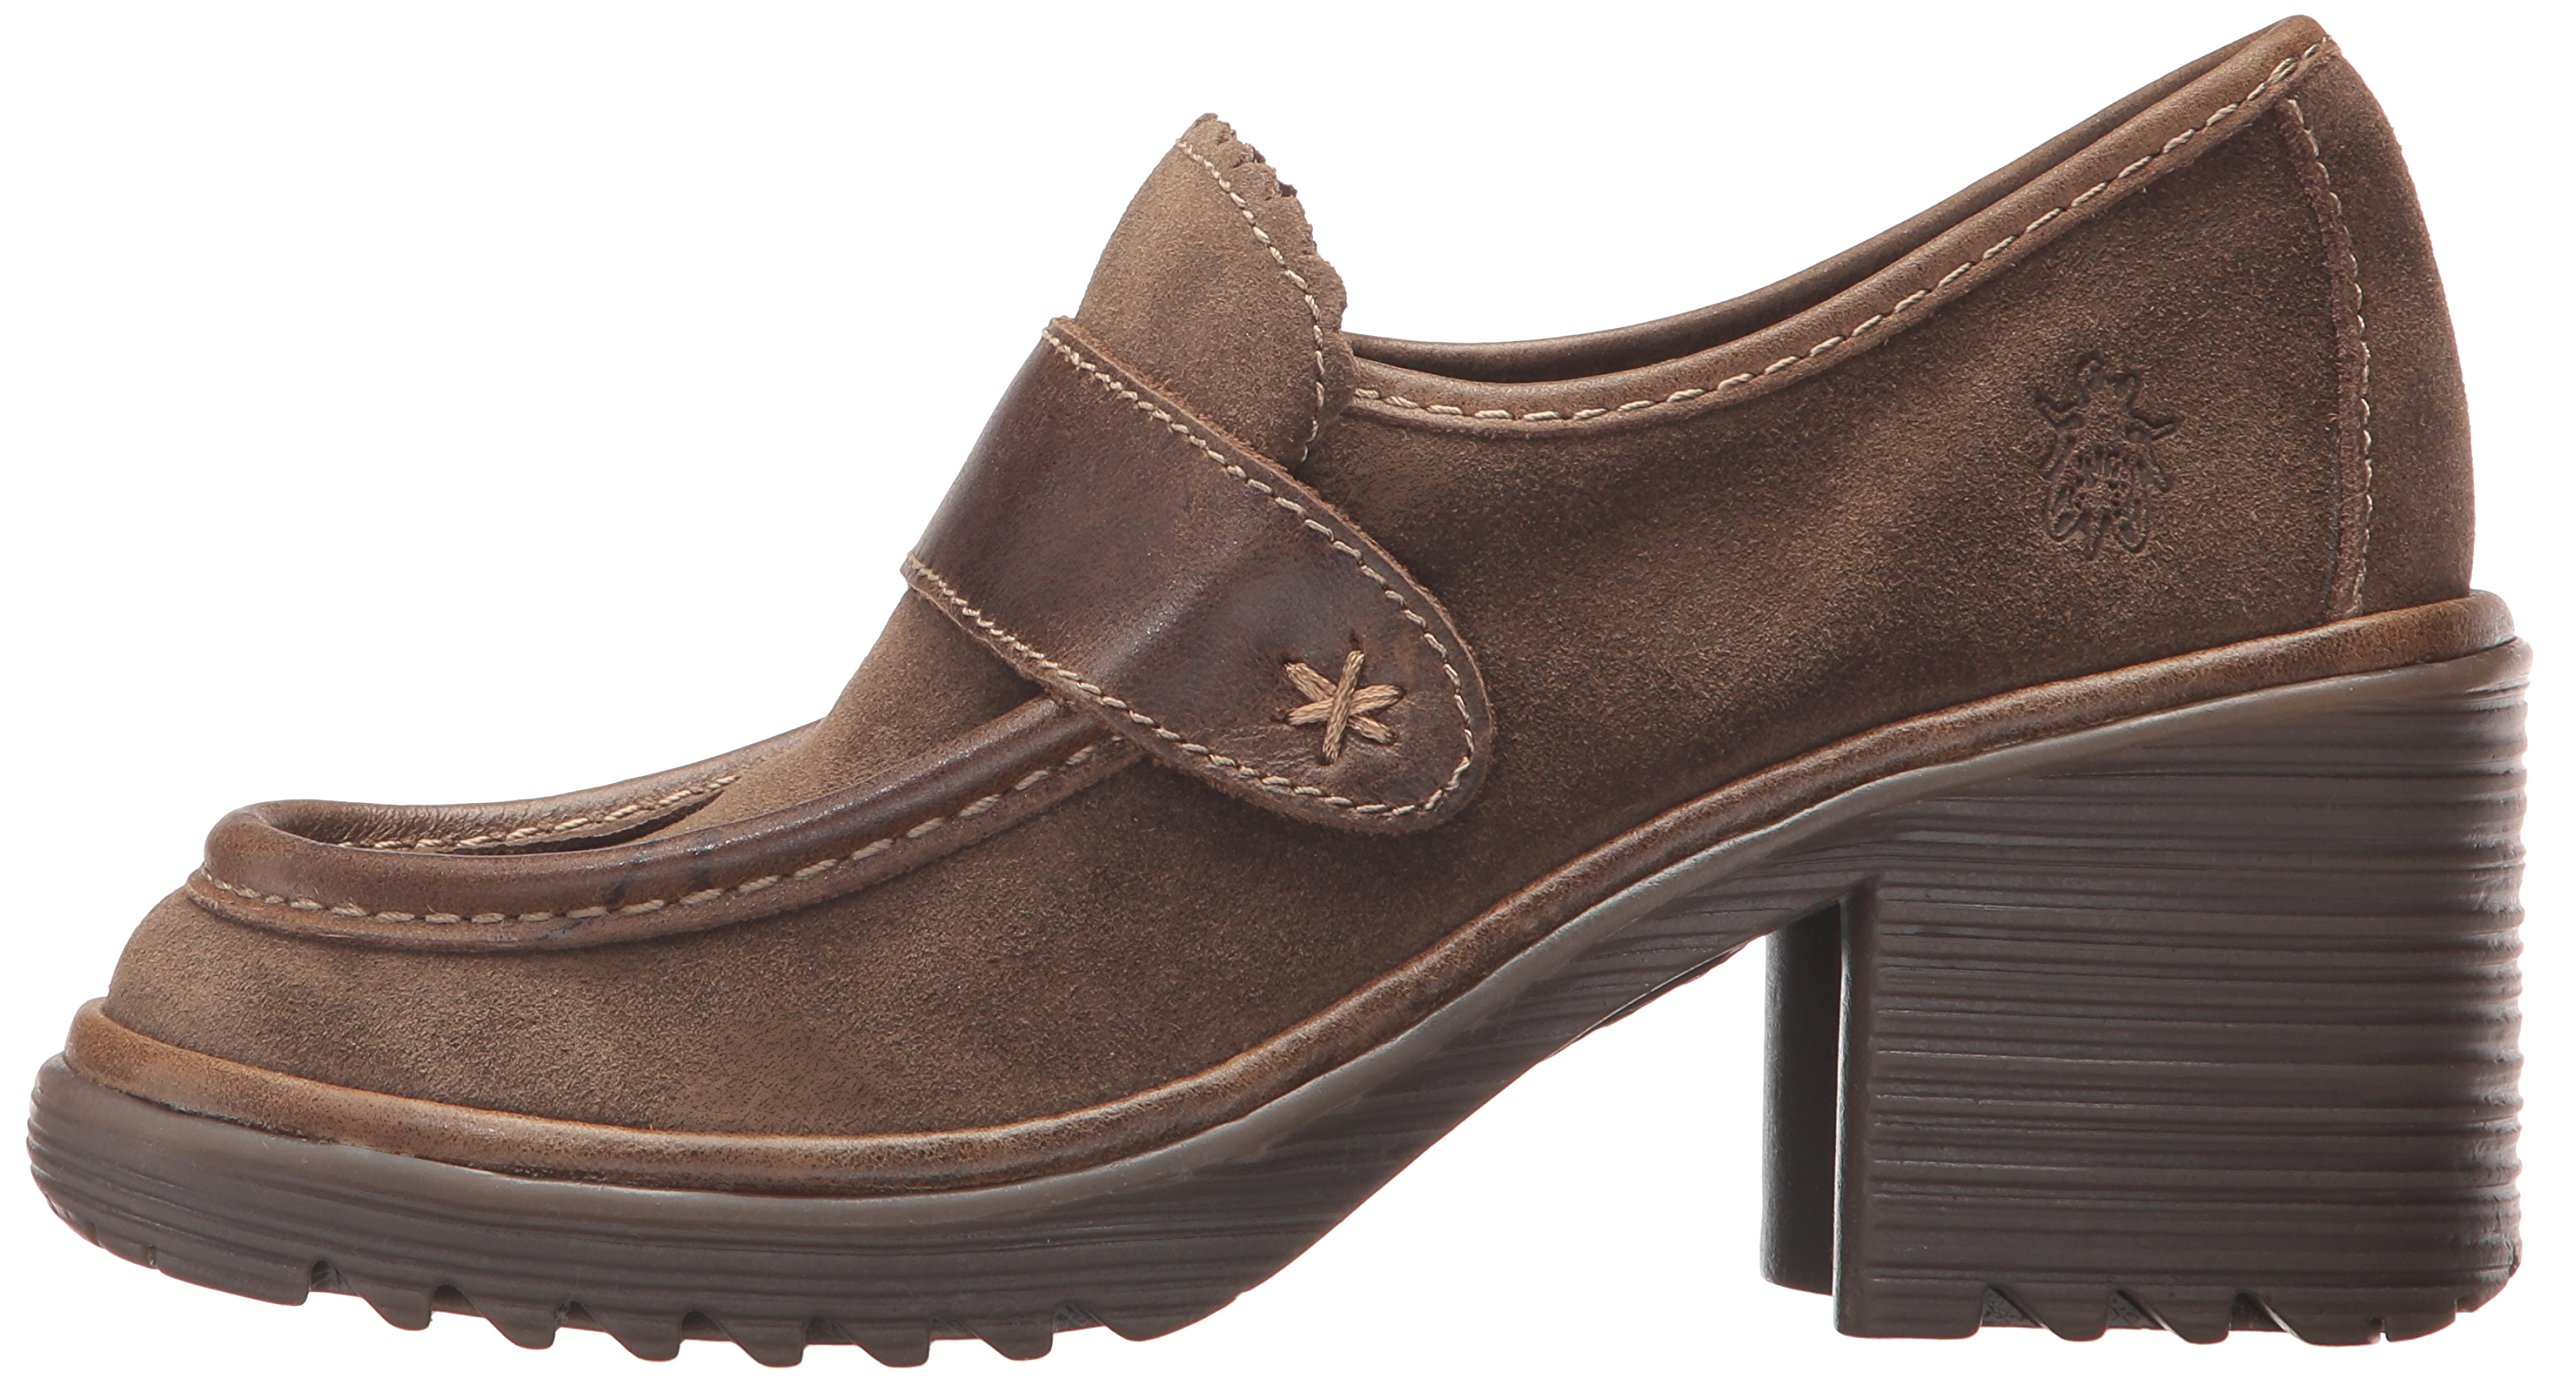 FLY London Women's WEND764FLY Penny Loafer, Sludge/Olive Oil Suede/Rug, 39 M EU (8-8.5 US) by FLY London (Image #5)